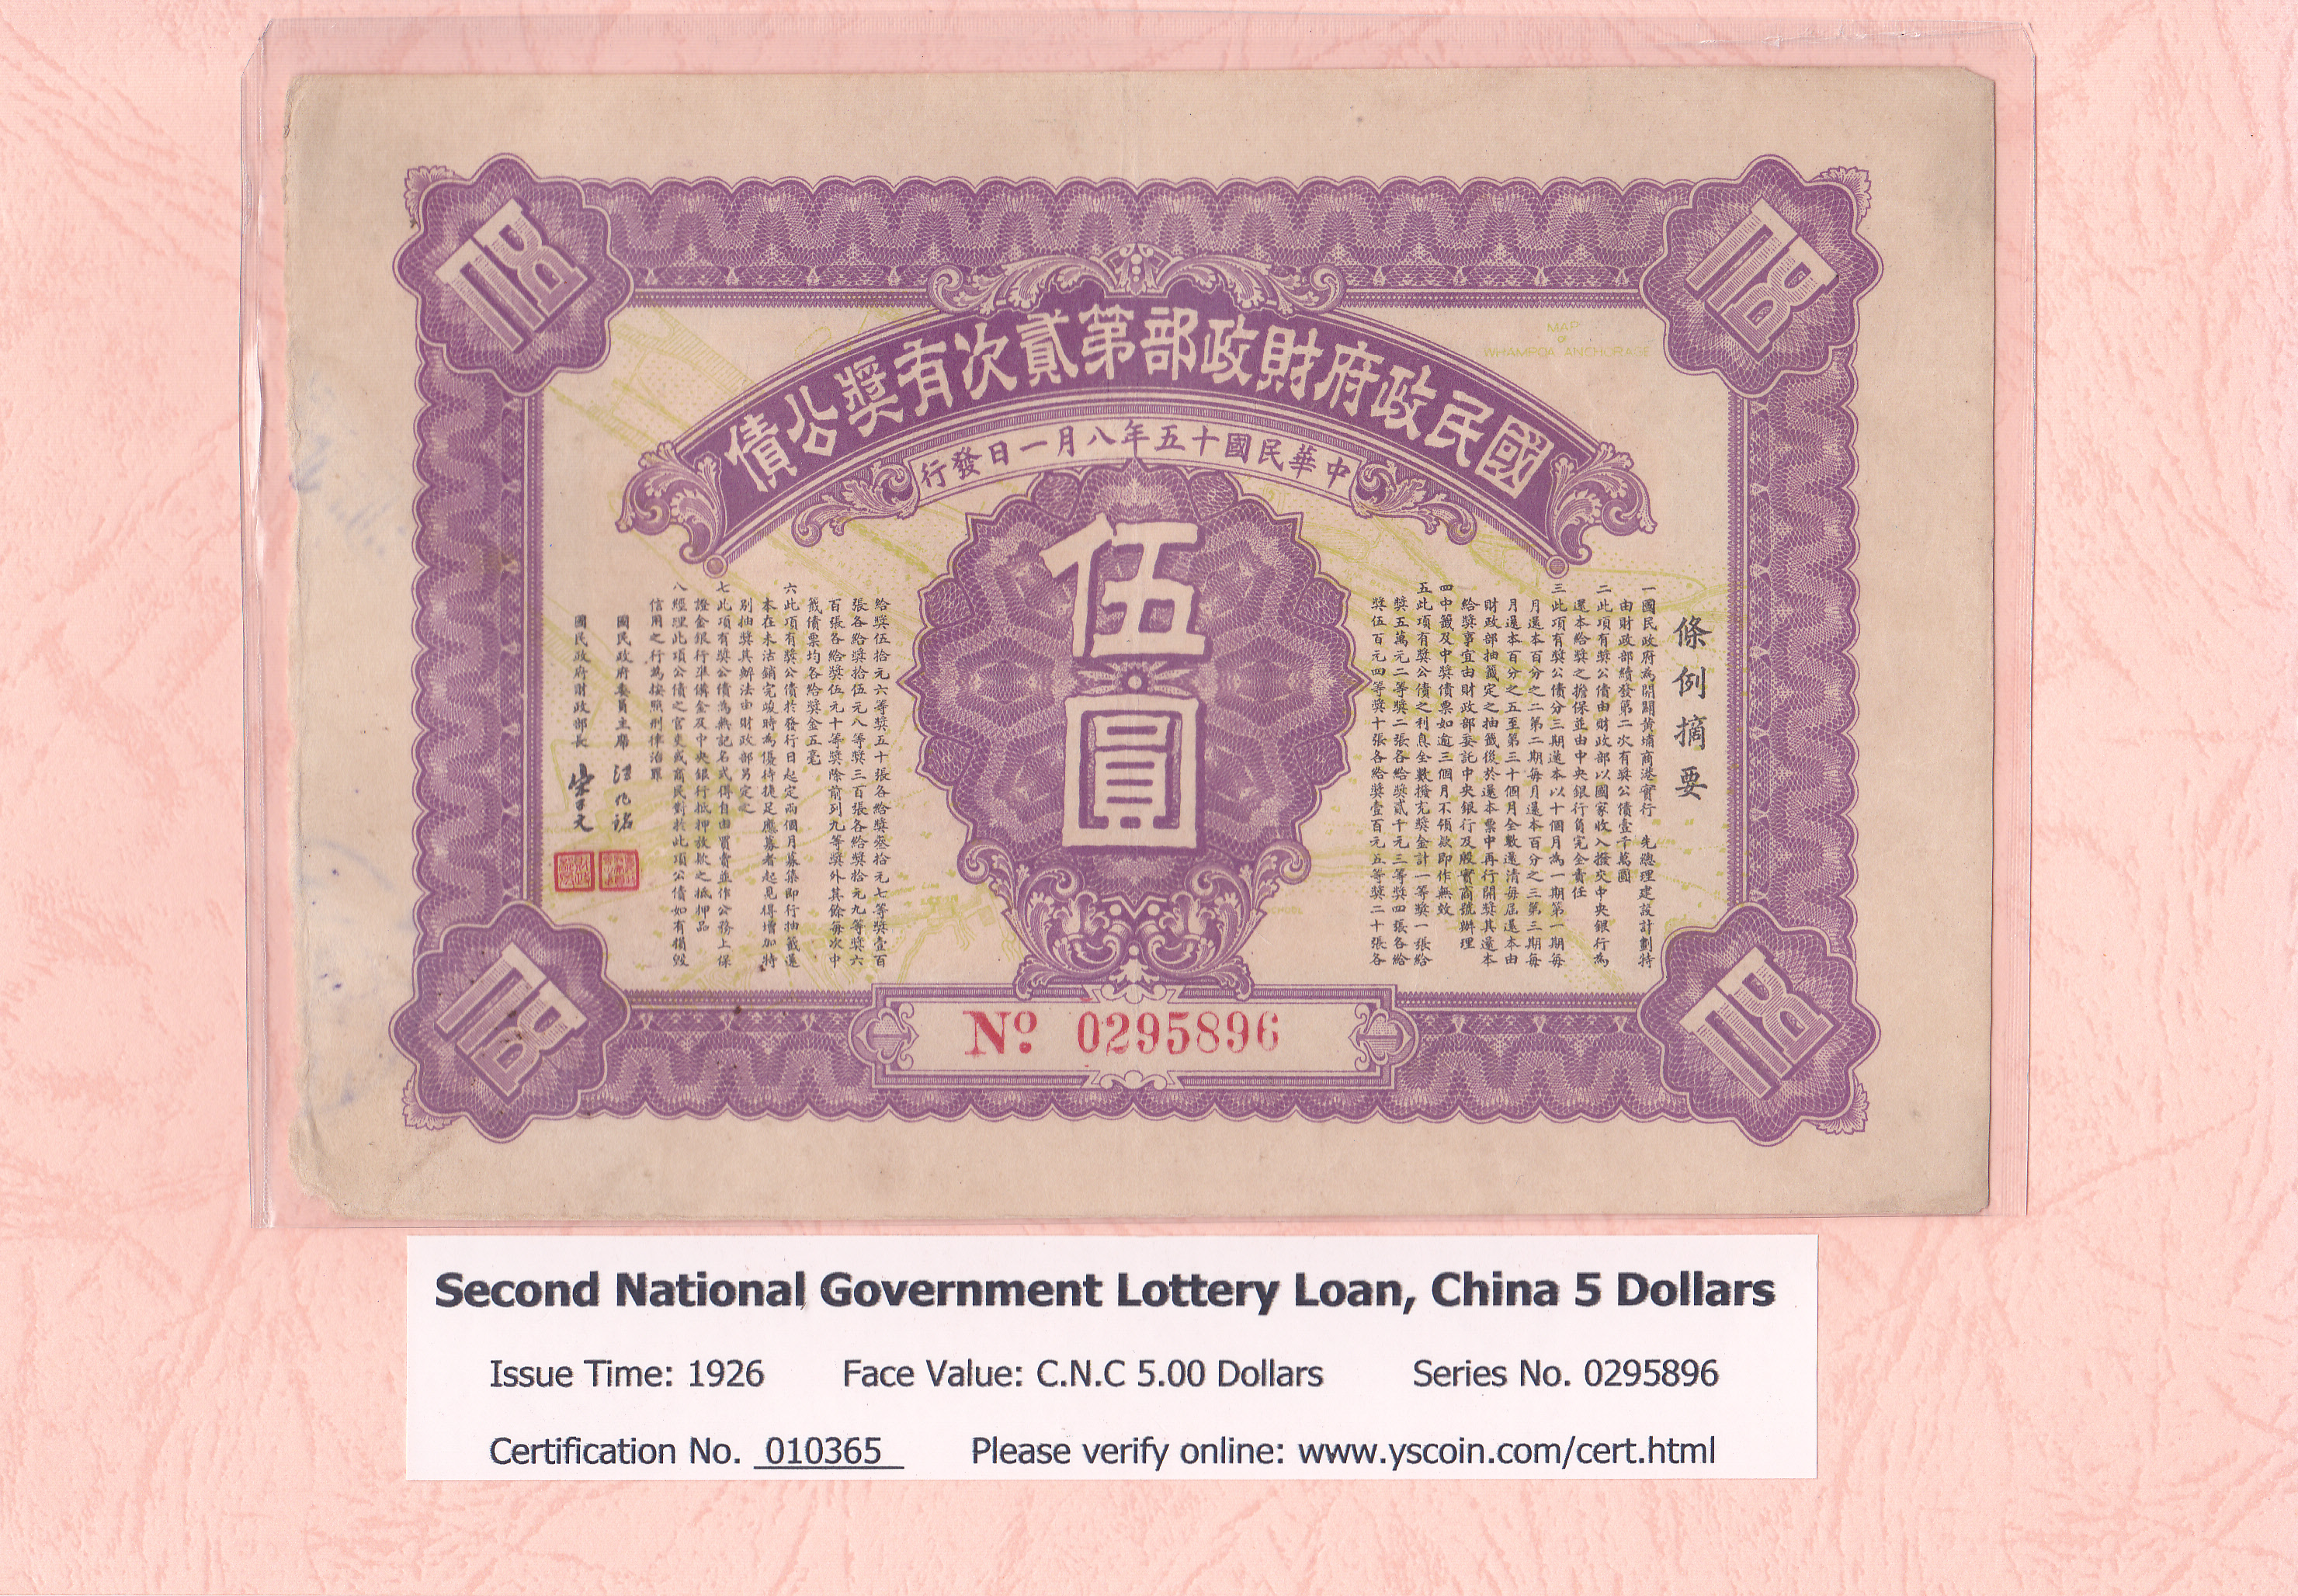 010365, Second National Government Lottery Loan, China 5 Dollars